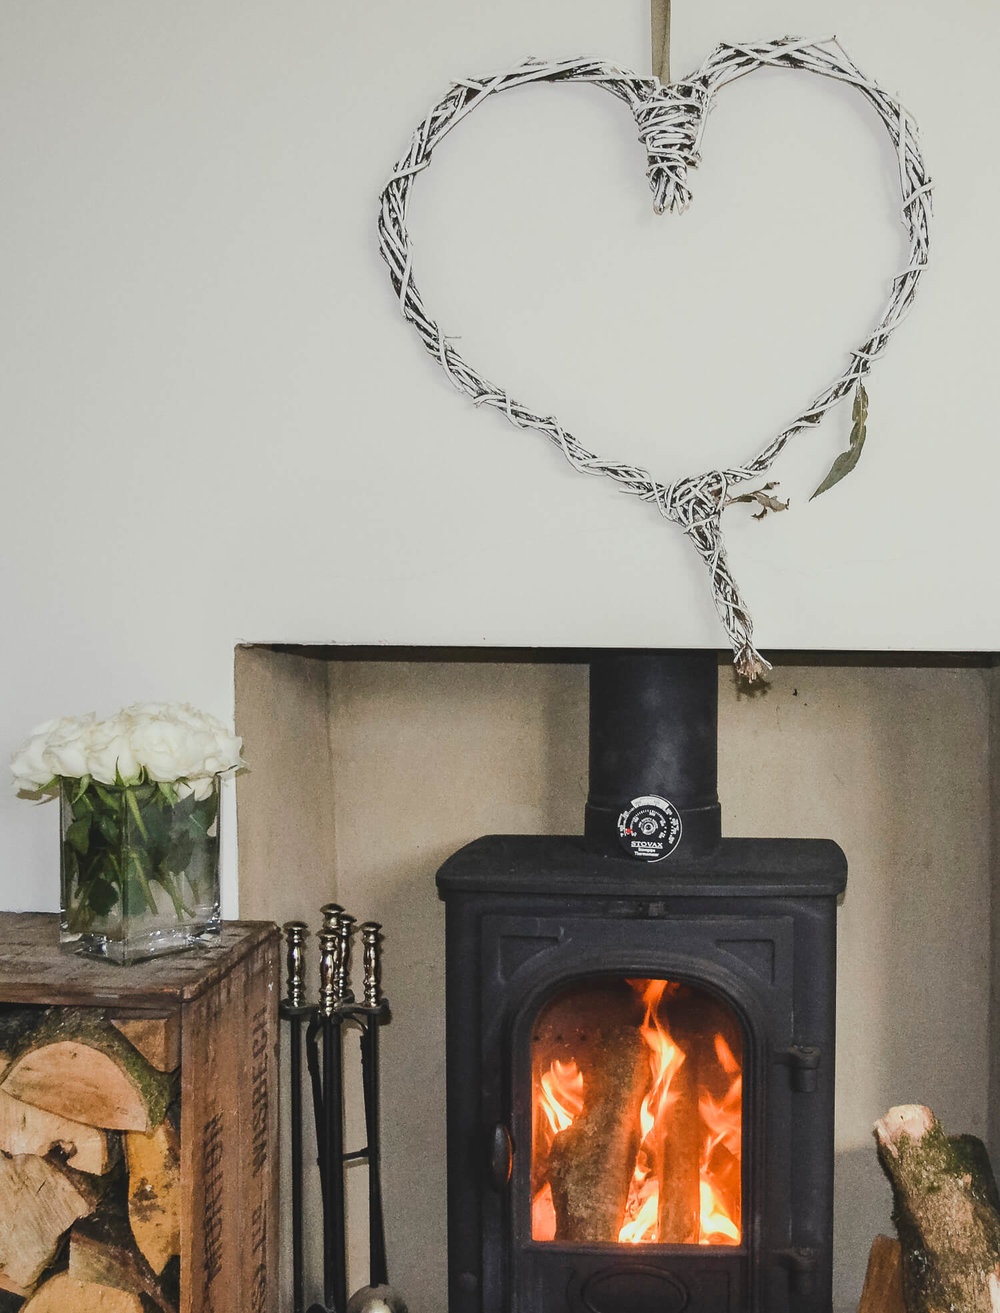 Willow heart decoration hung above a roaring fire with piles of logs